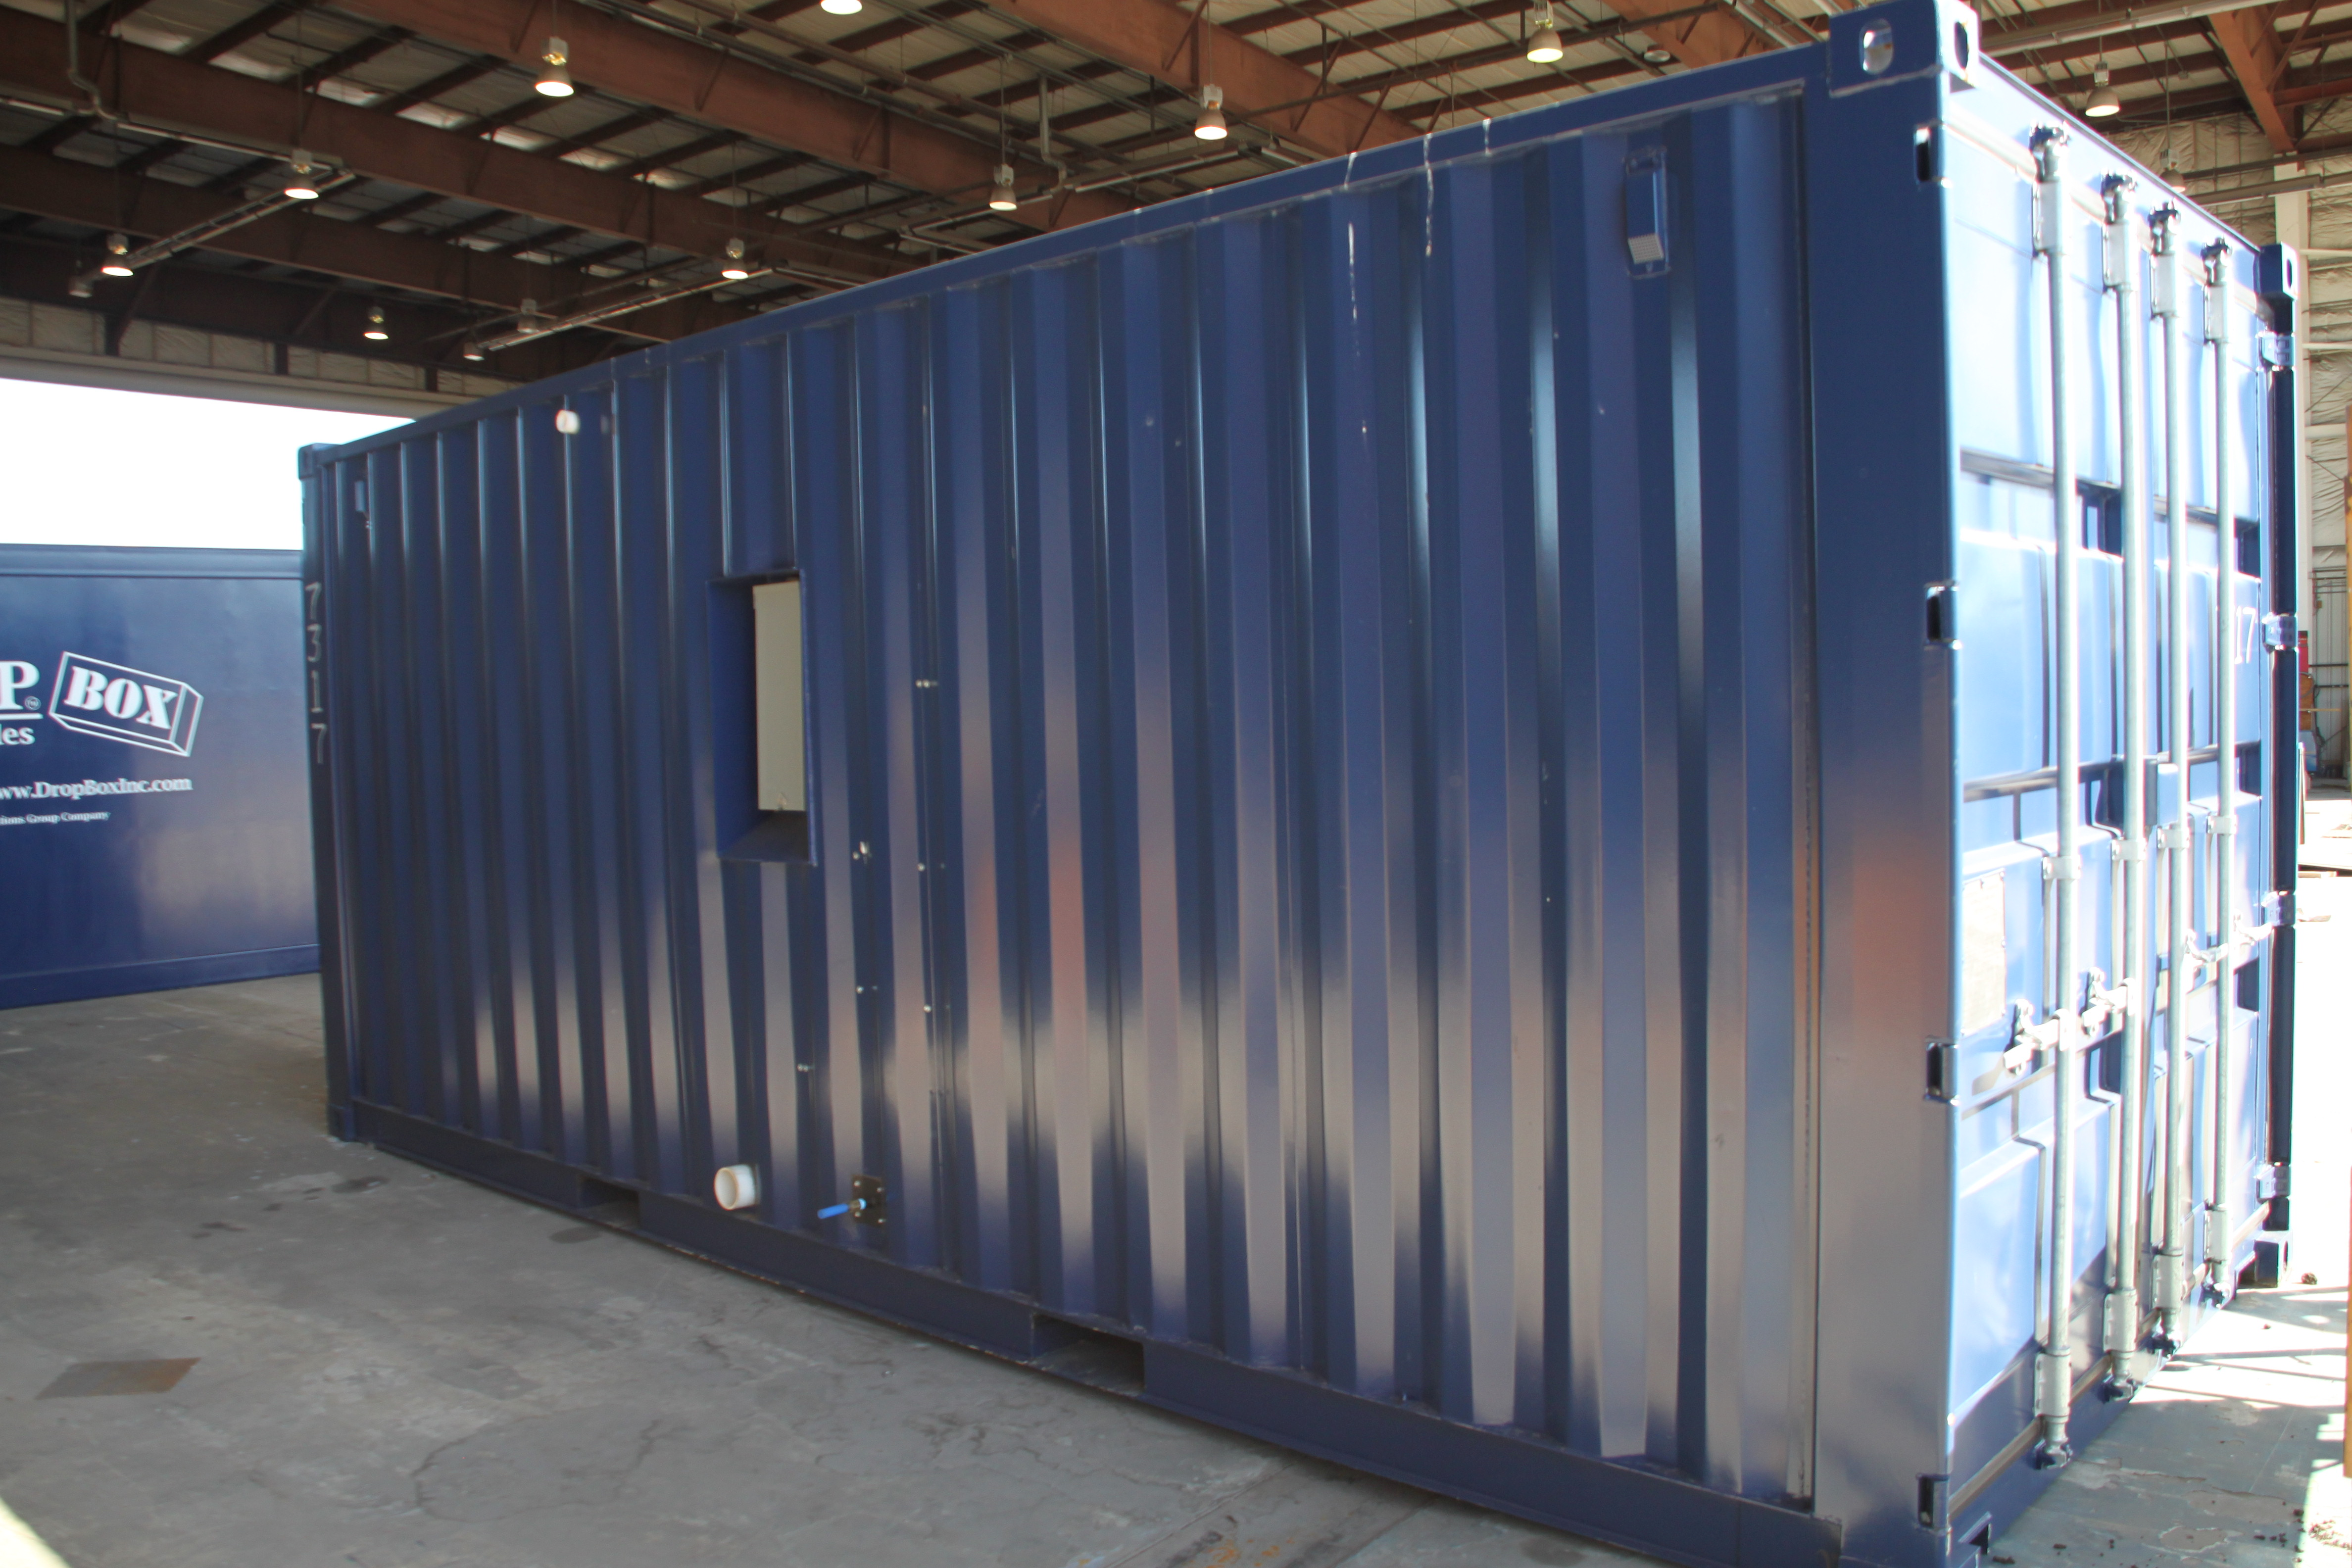 DropBox Inc, containerized restroom, containerized shower trailer, containerized shower unit, portable septic system, containerized septic system, containerized sewer holding tanks